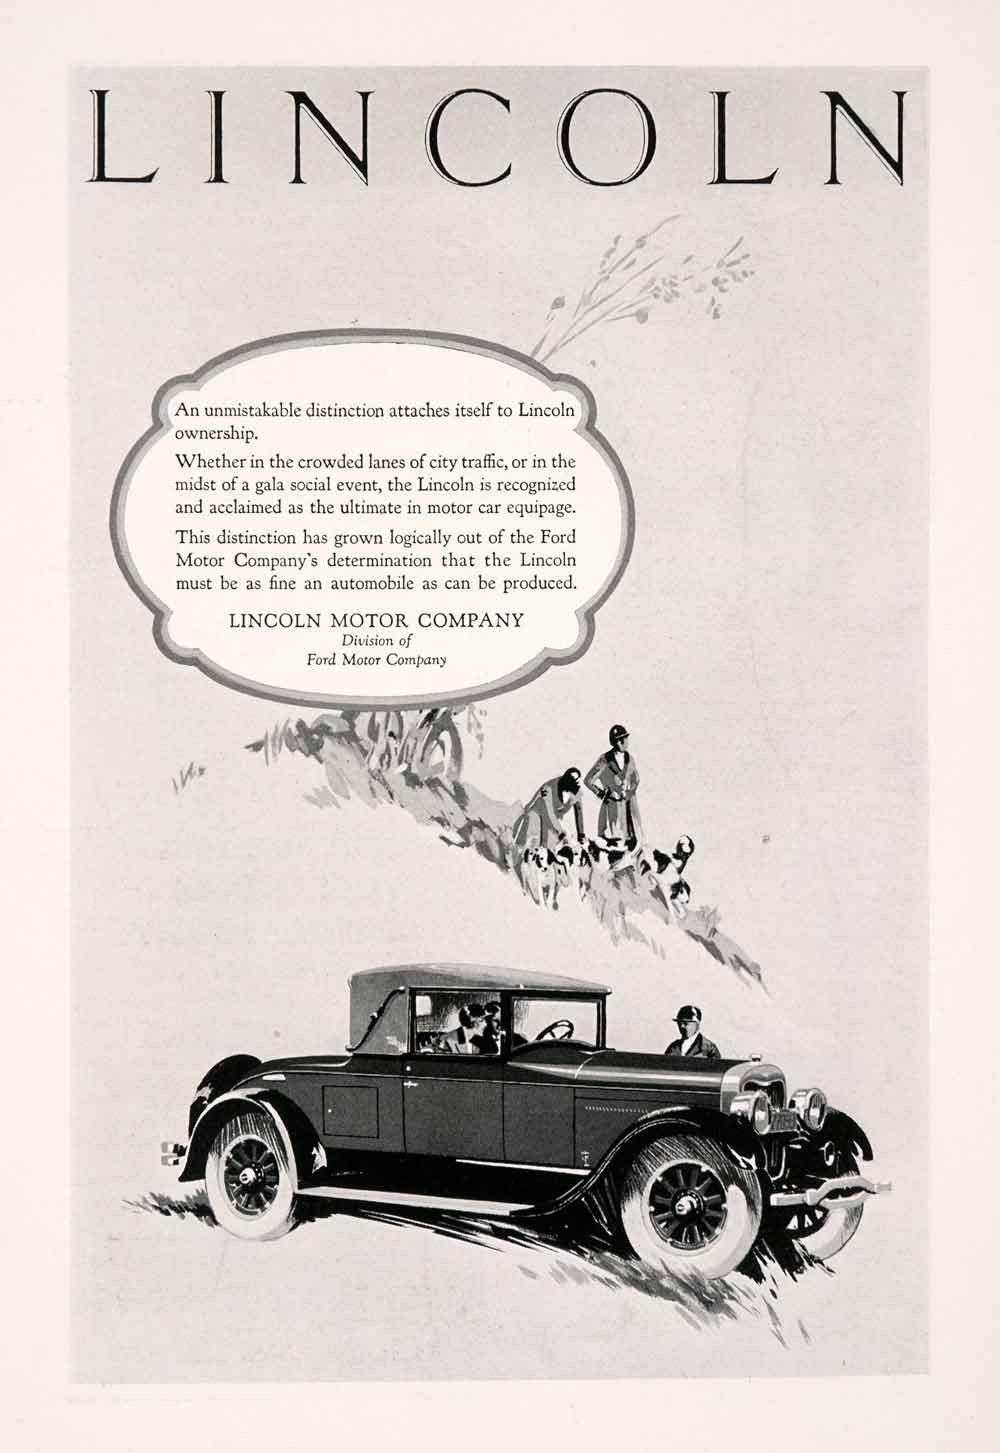 1926 Ad Lincoln Motor Car Puppies Dog Automobile Fox Hunting Ford